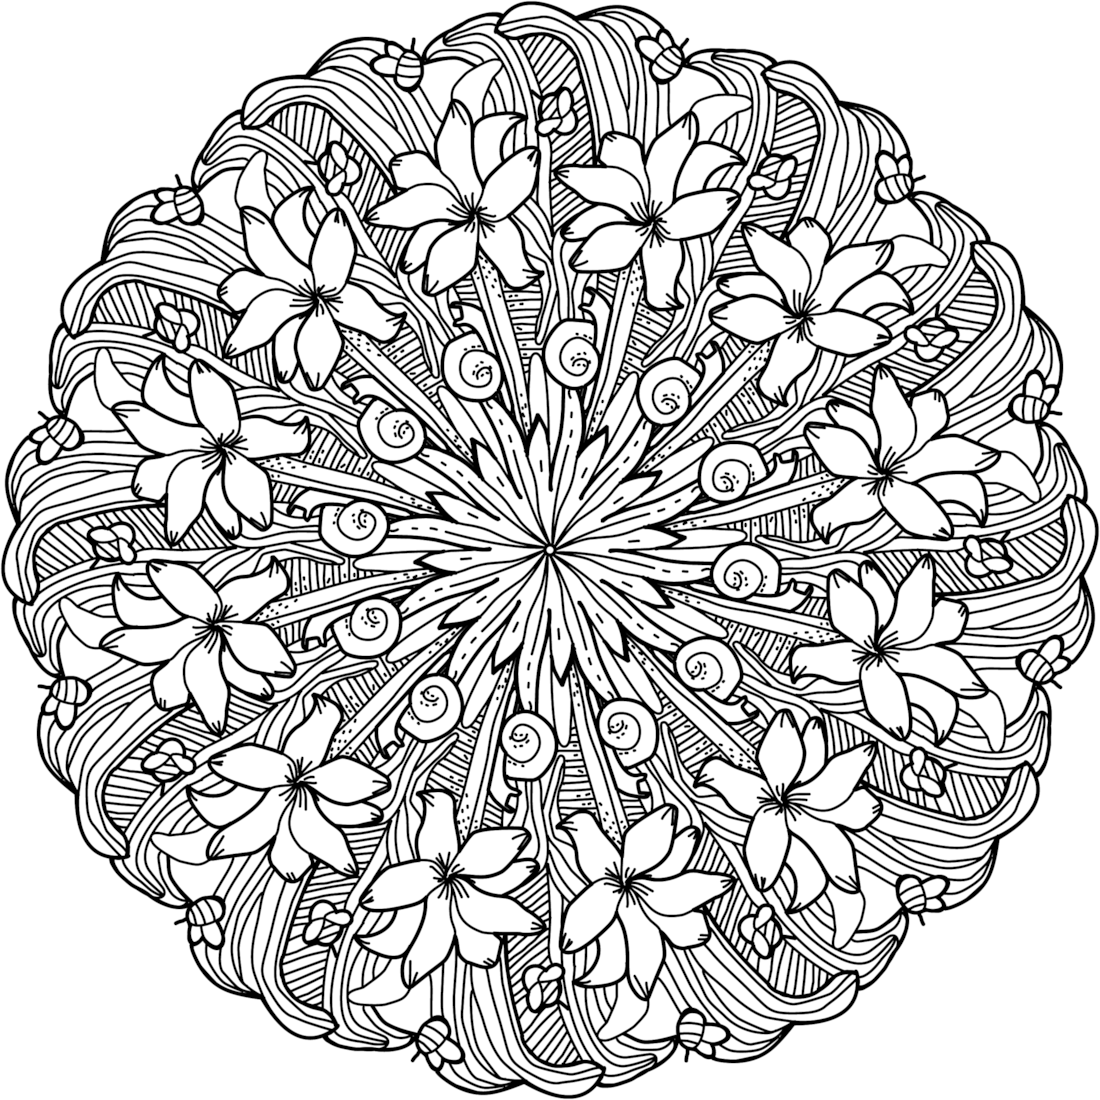 coloring prints for adults adult coloring pages elephant free 101 worksheets for adults prints coloring